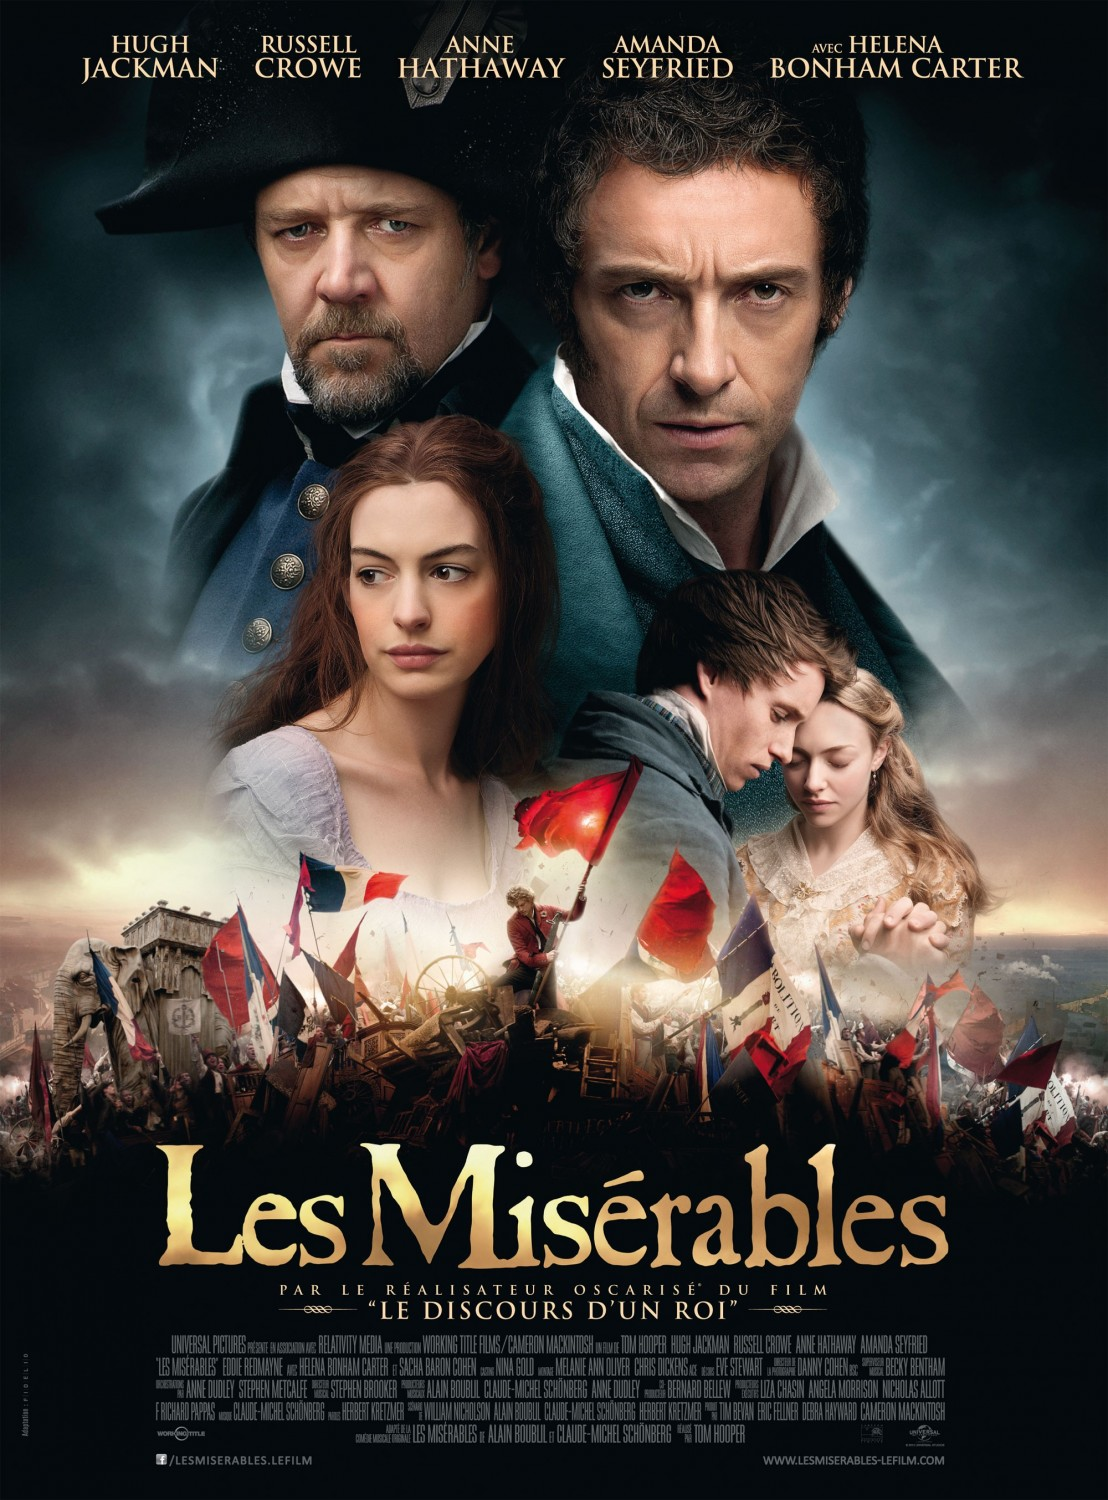 les miserables movie summary